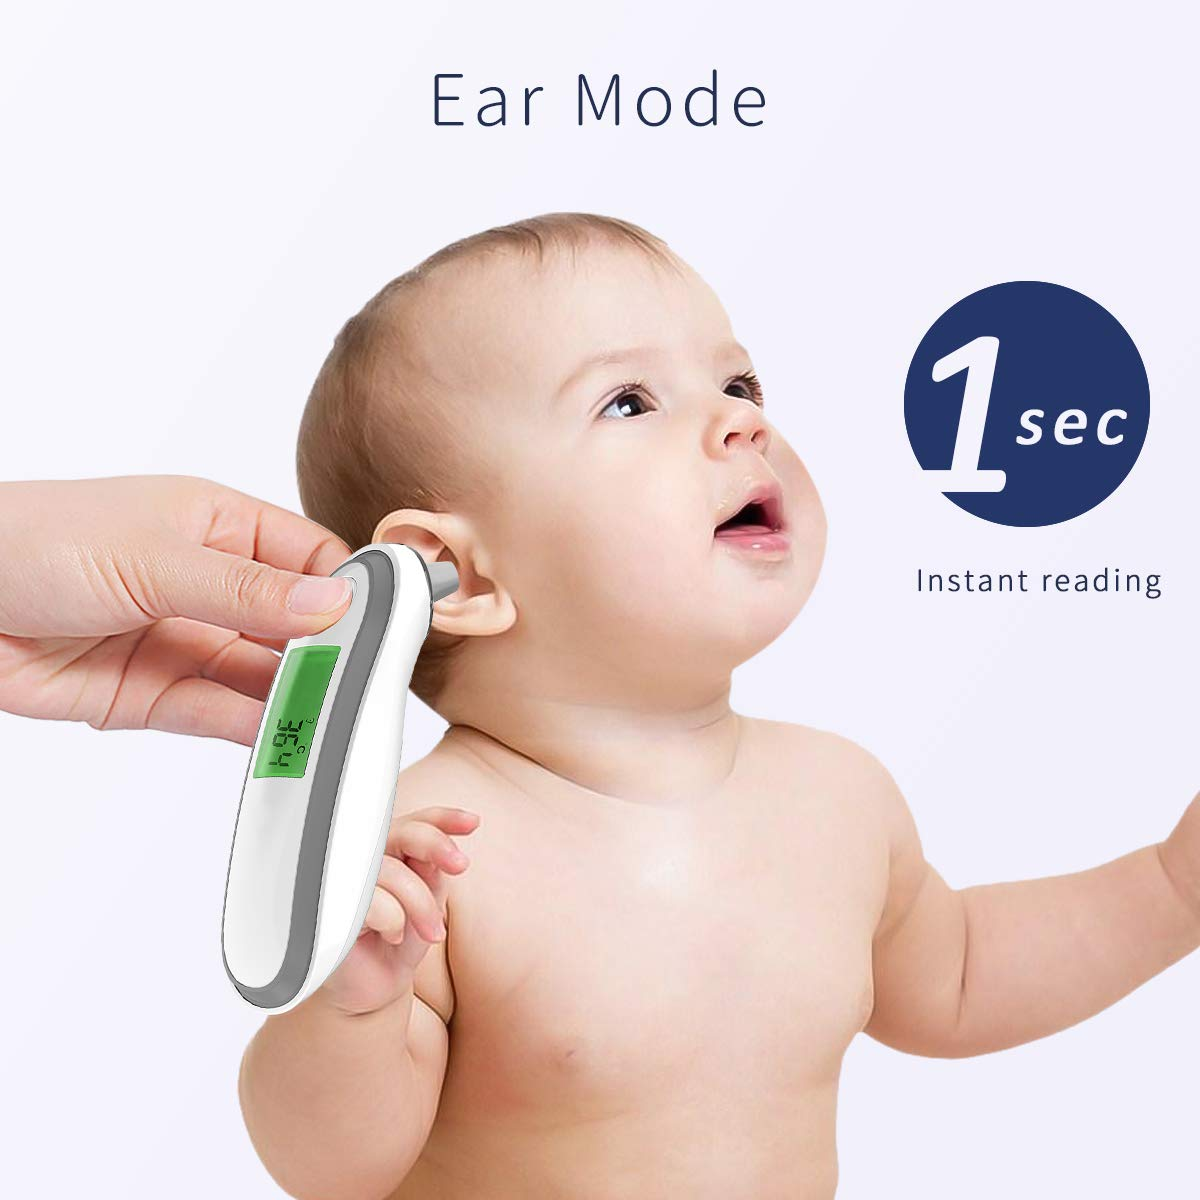 Purple SONARIN Ear and Forehead Thermometer Digital Medical for Baby and Adults,Fever Warning,Clinical Monitoring,Instant Reading,CE and FDA Certified